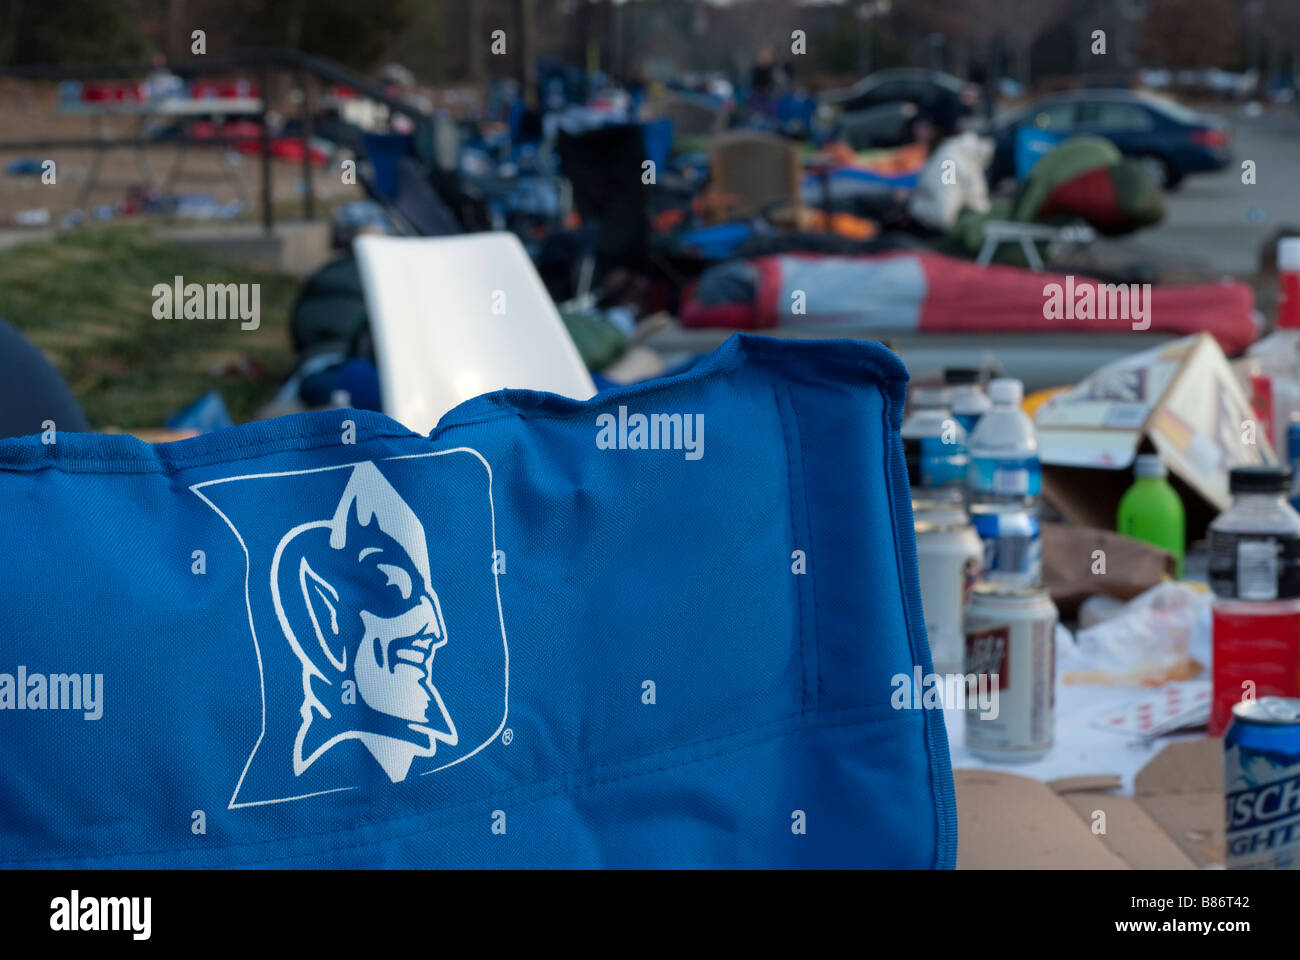 Students of Duke University camp out in front of Cameron Indoor Stadium before a Duke vs UNC Basketball game - Stock Image